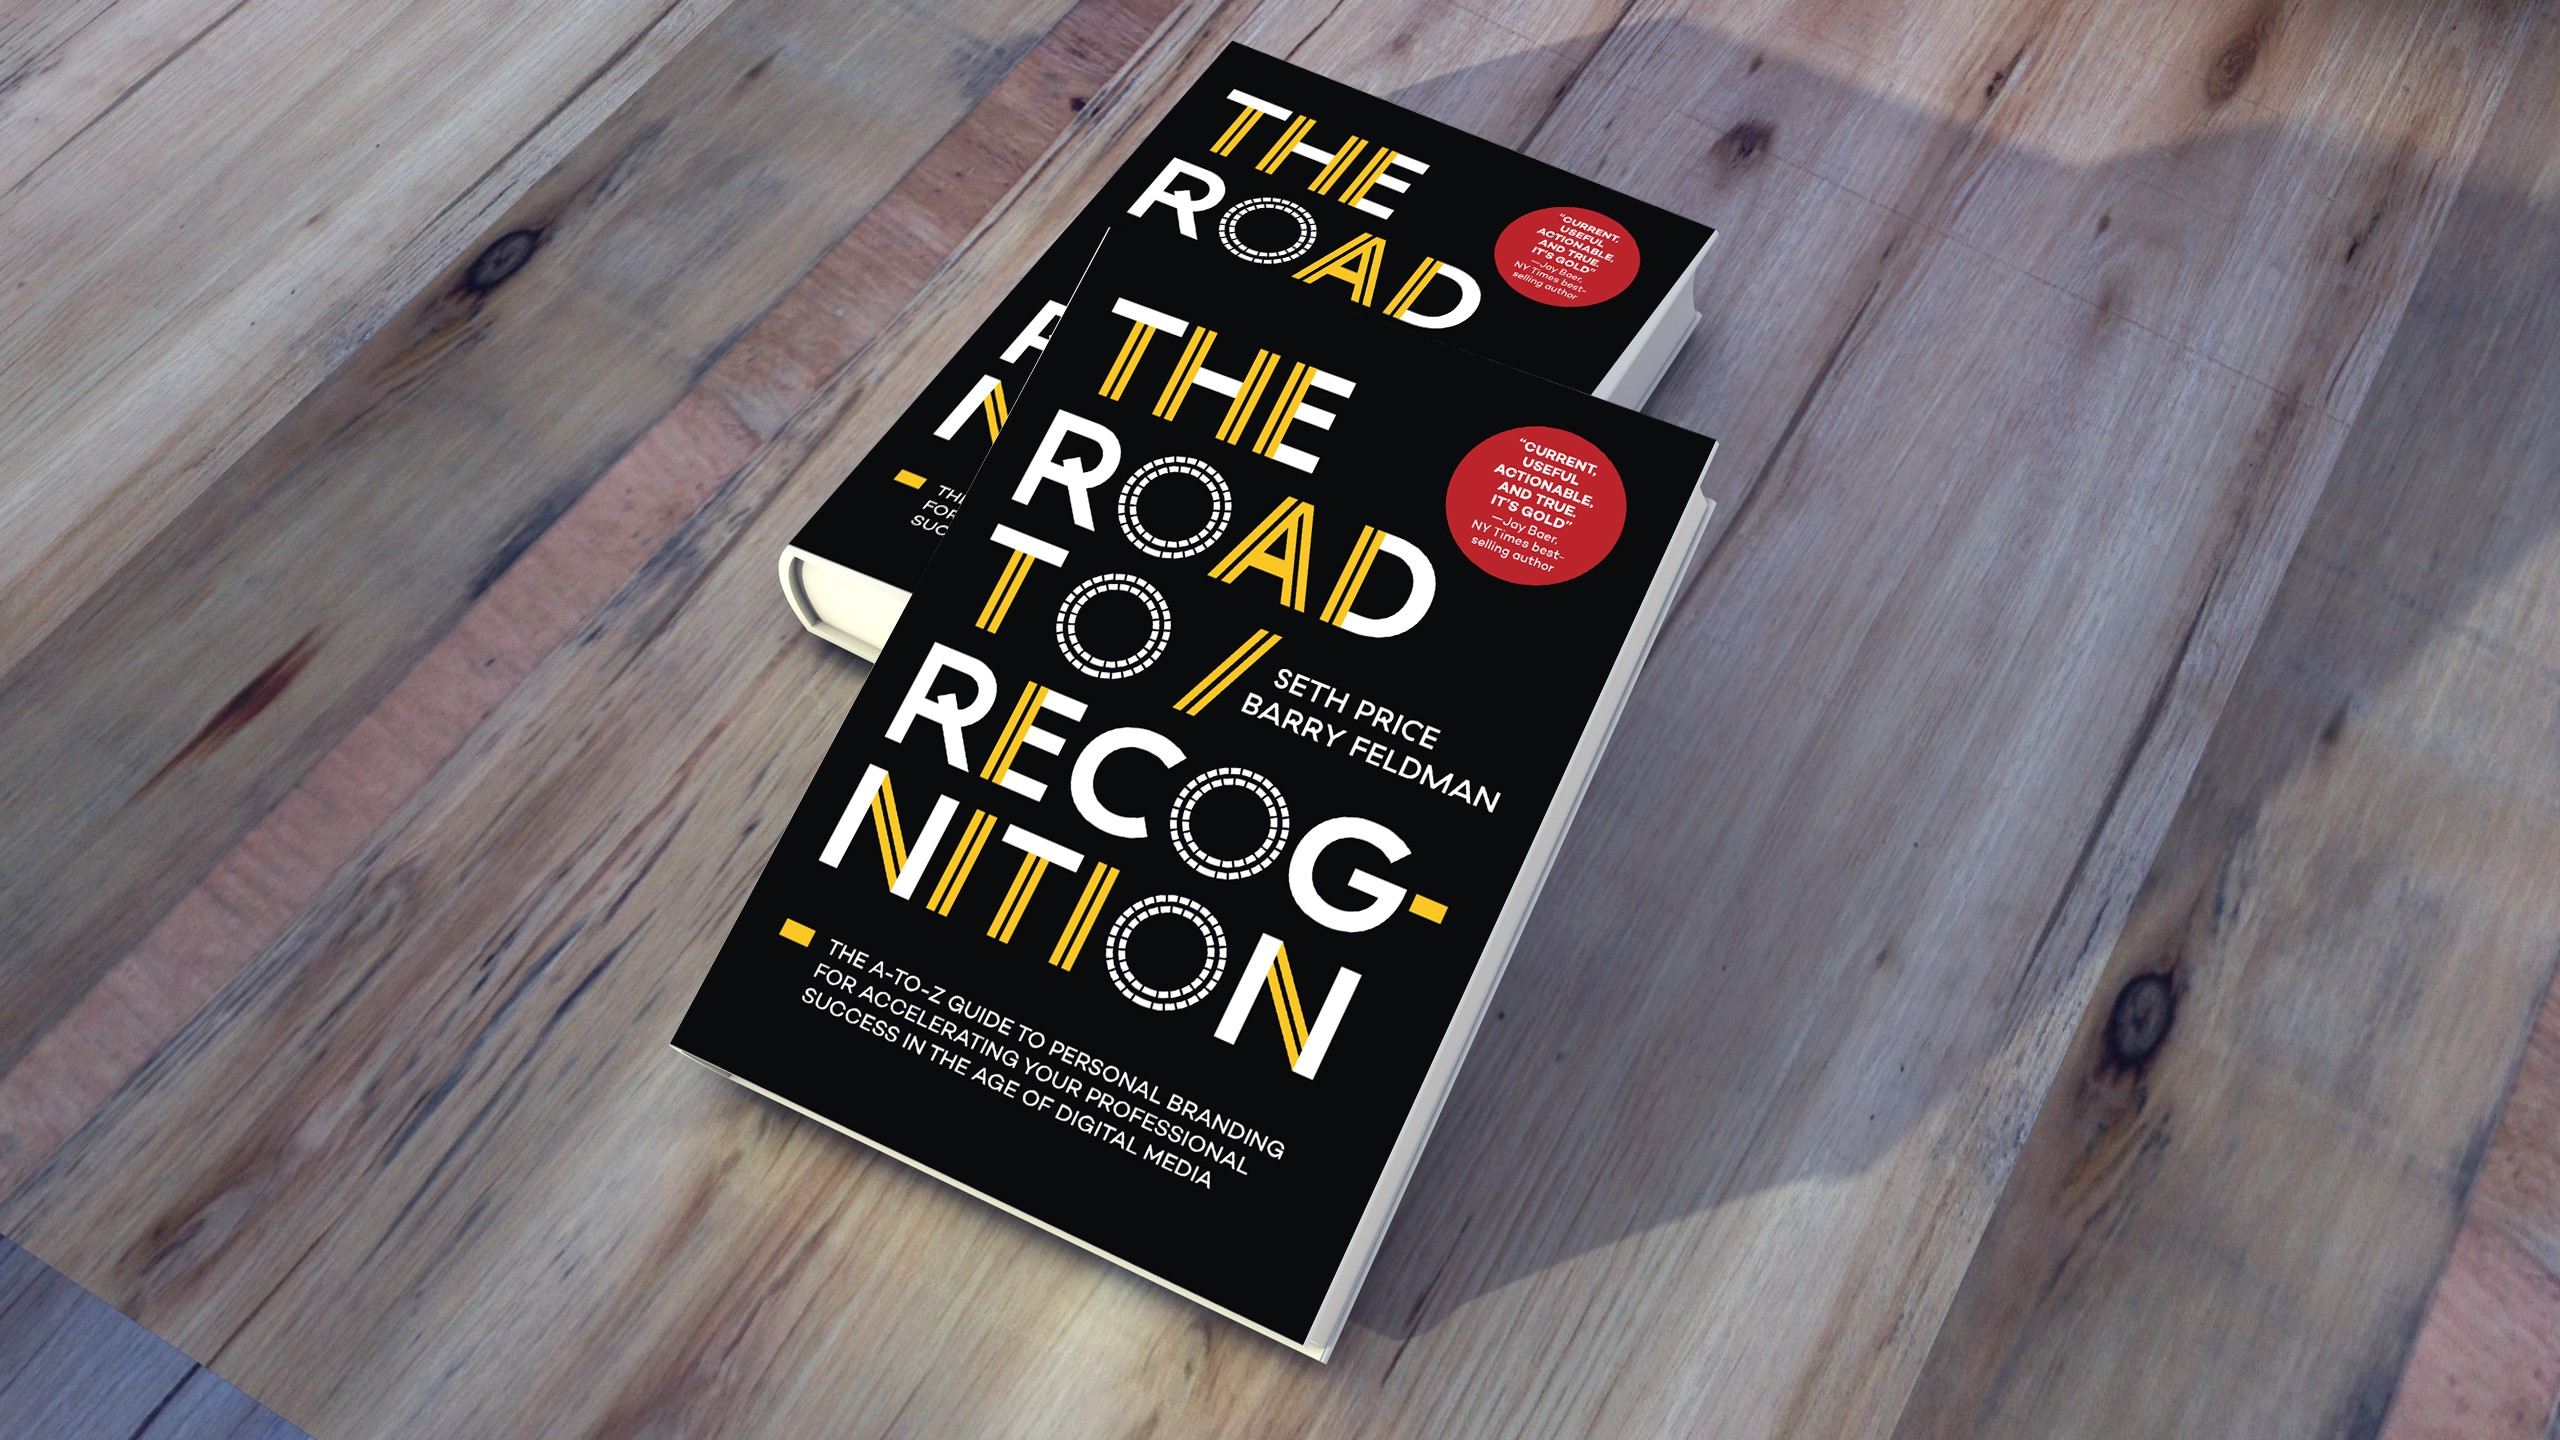 The Road to Recognition book